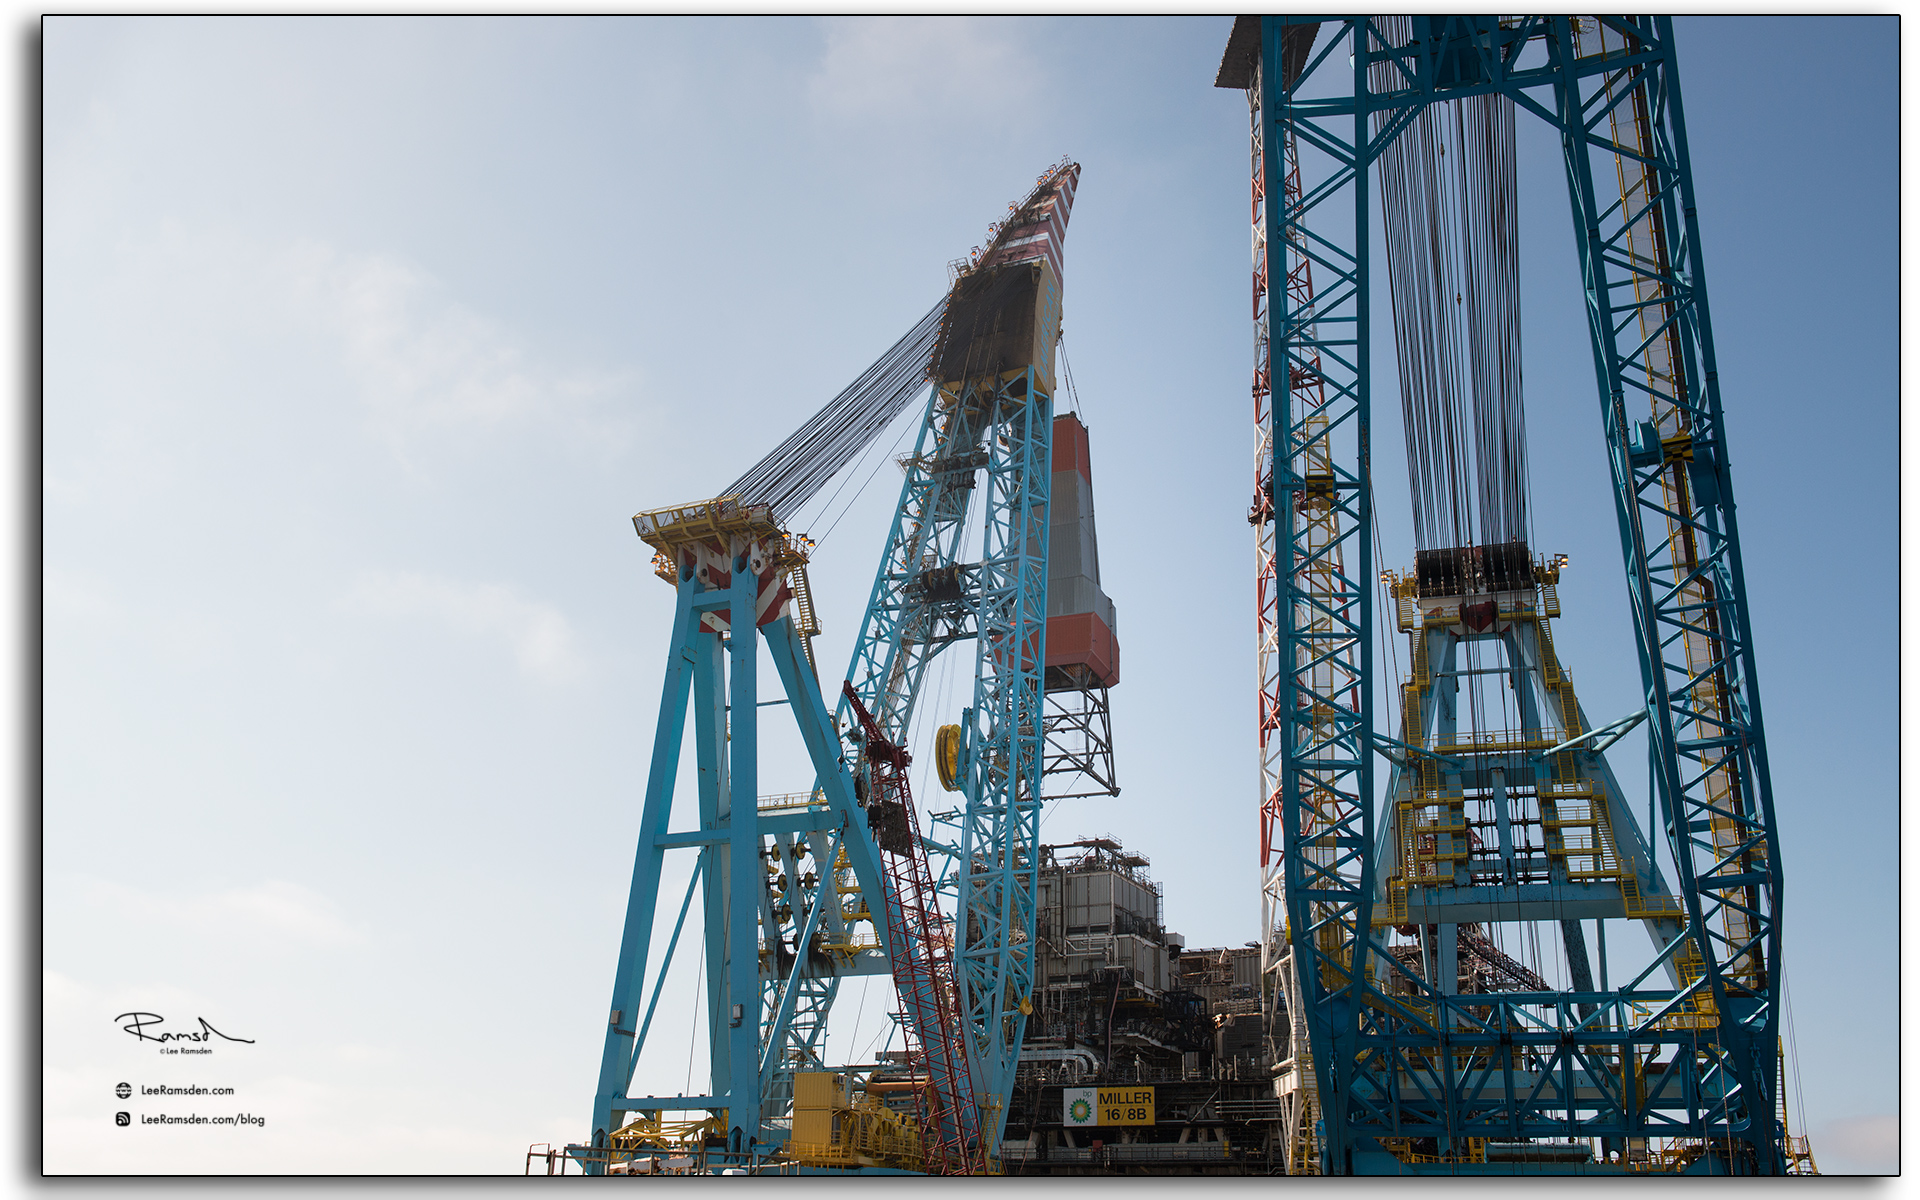 derrick lifted off platform, north sea, oil and gas rig